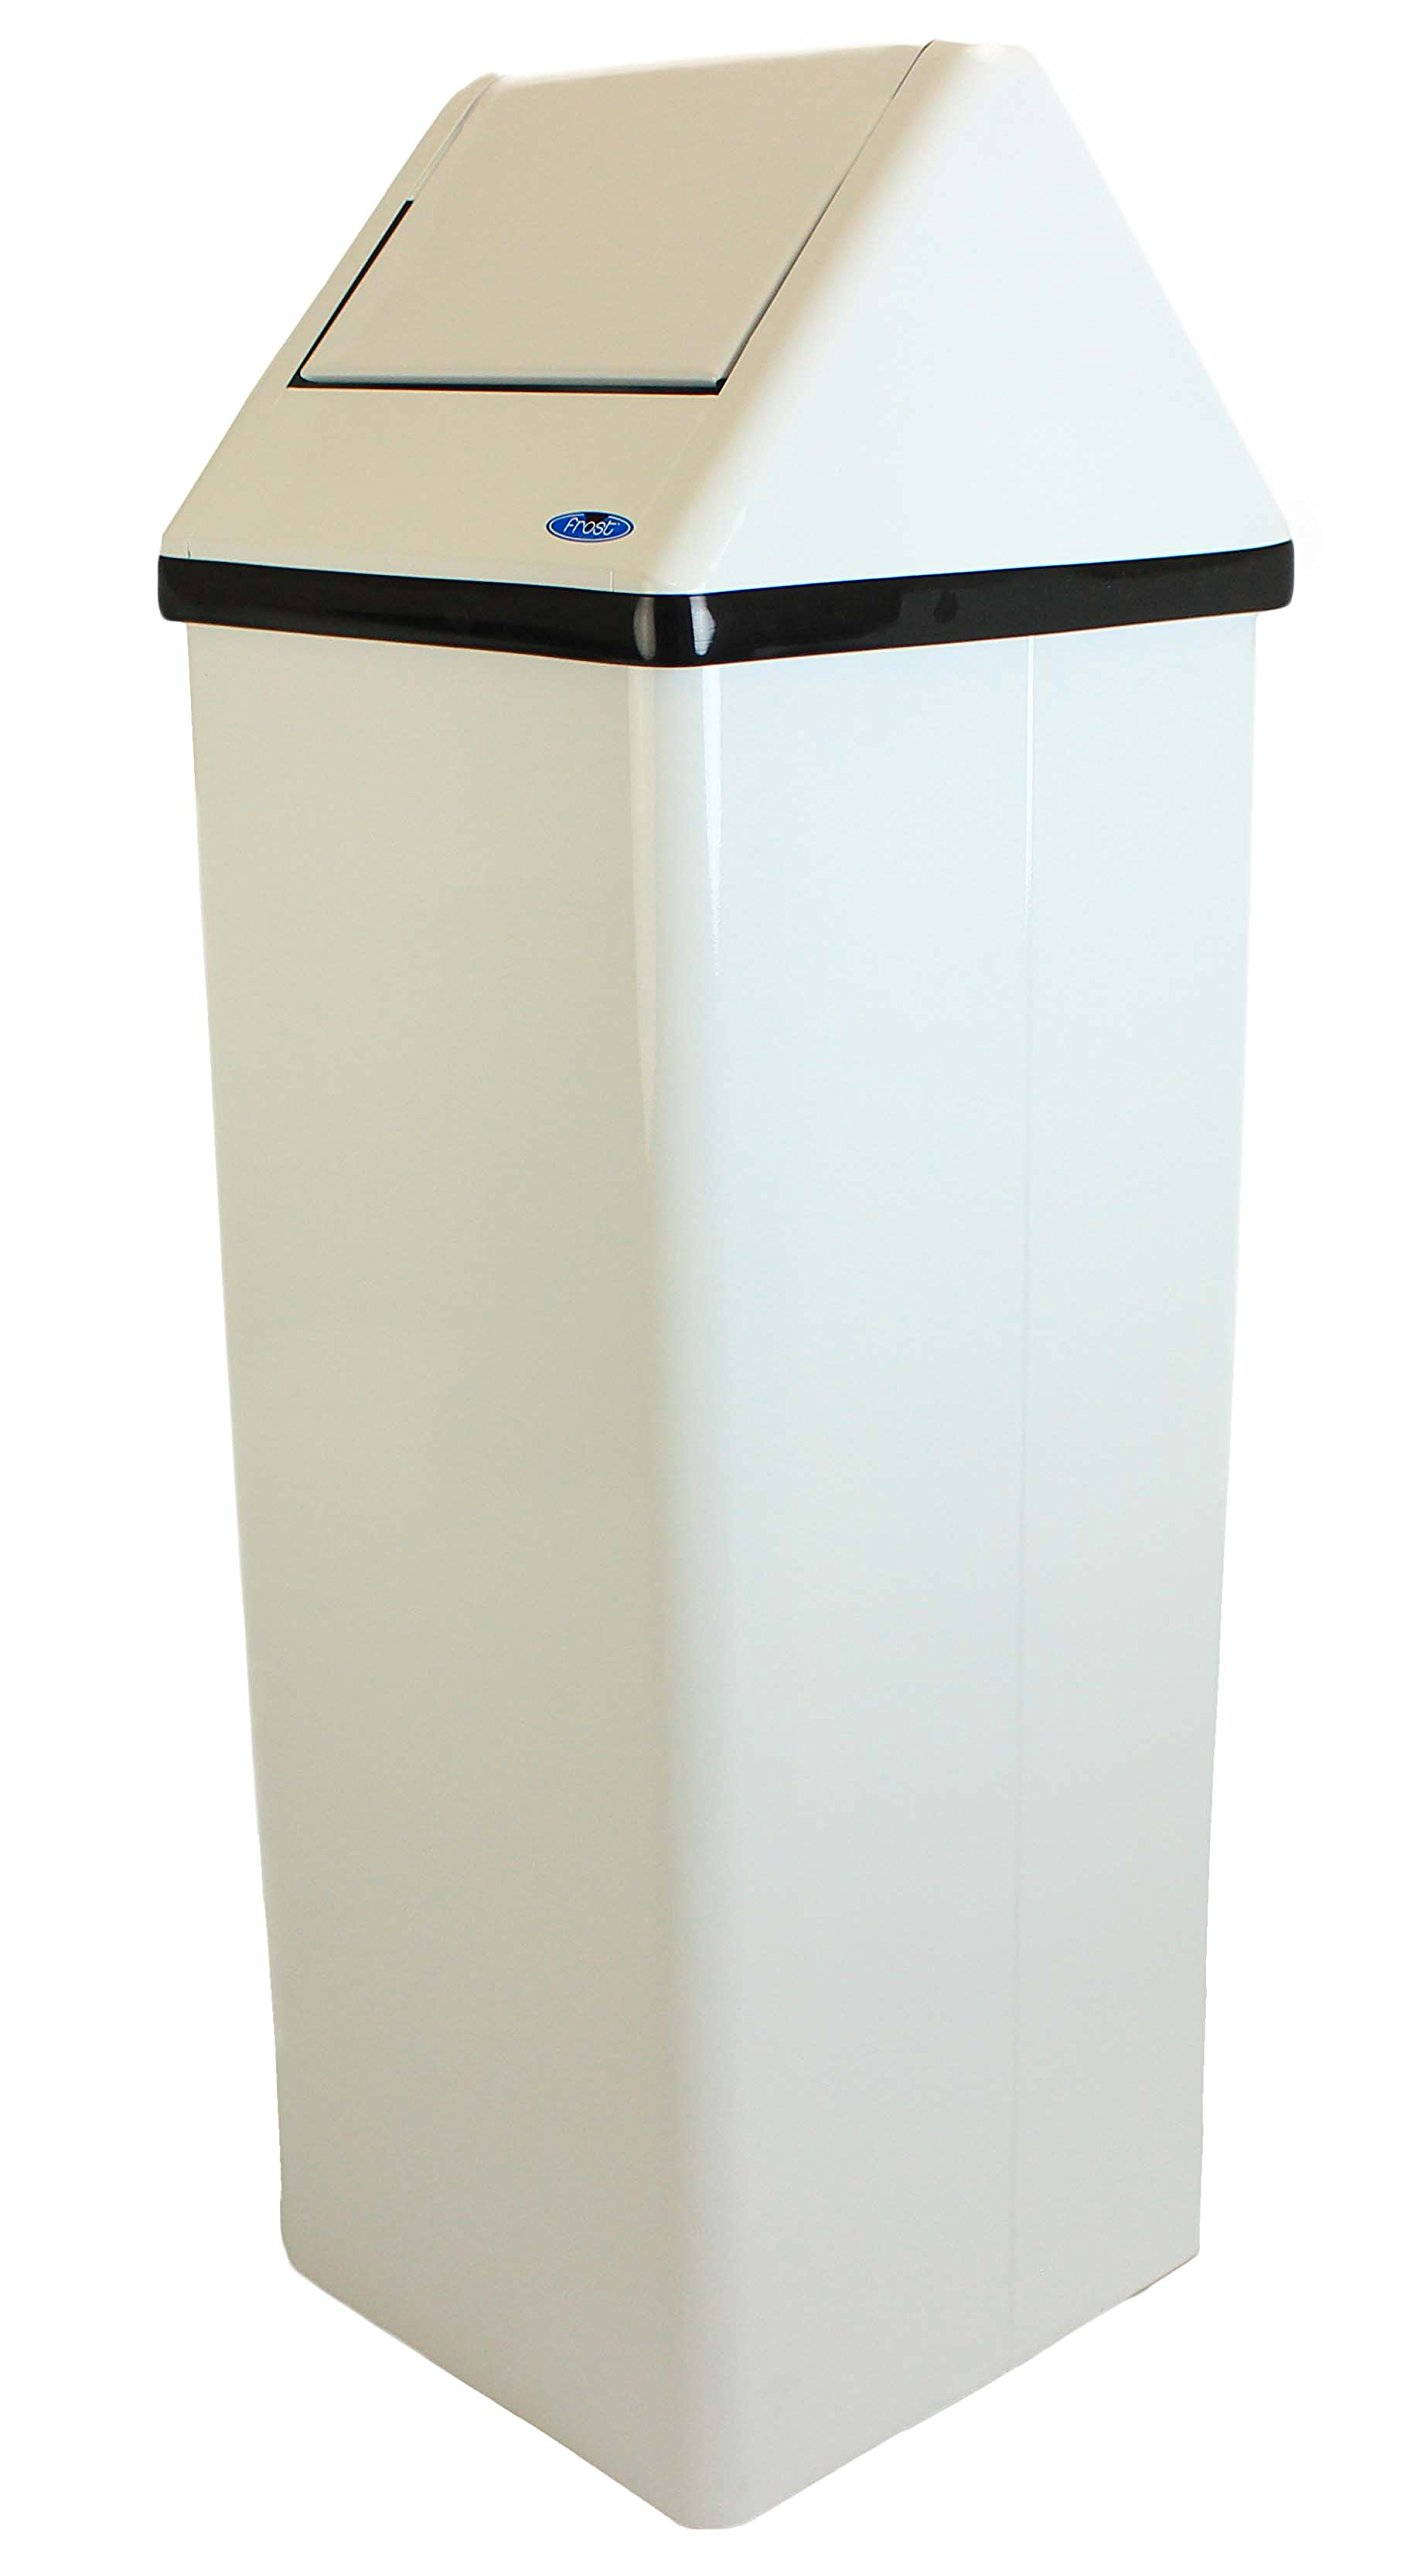 Frost 300 NL Waste Receptacle, White